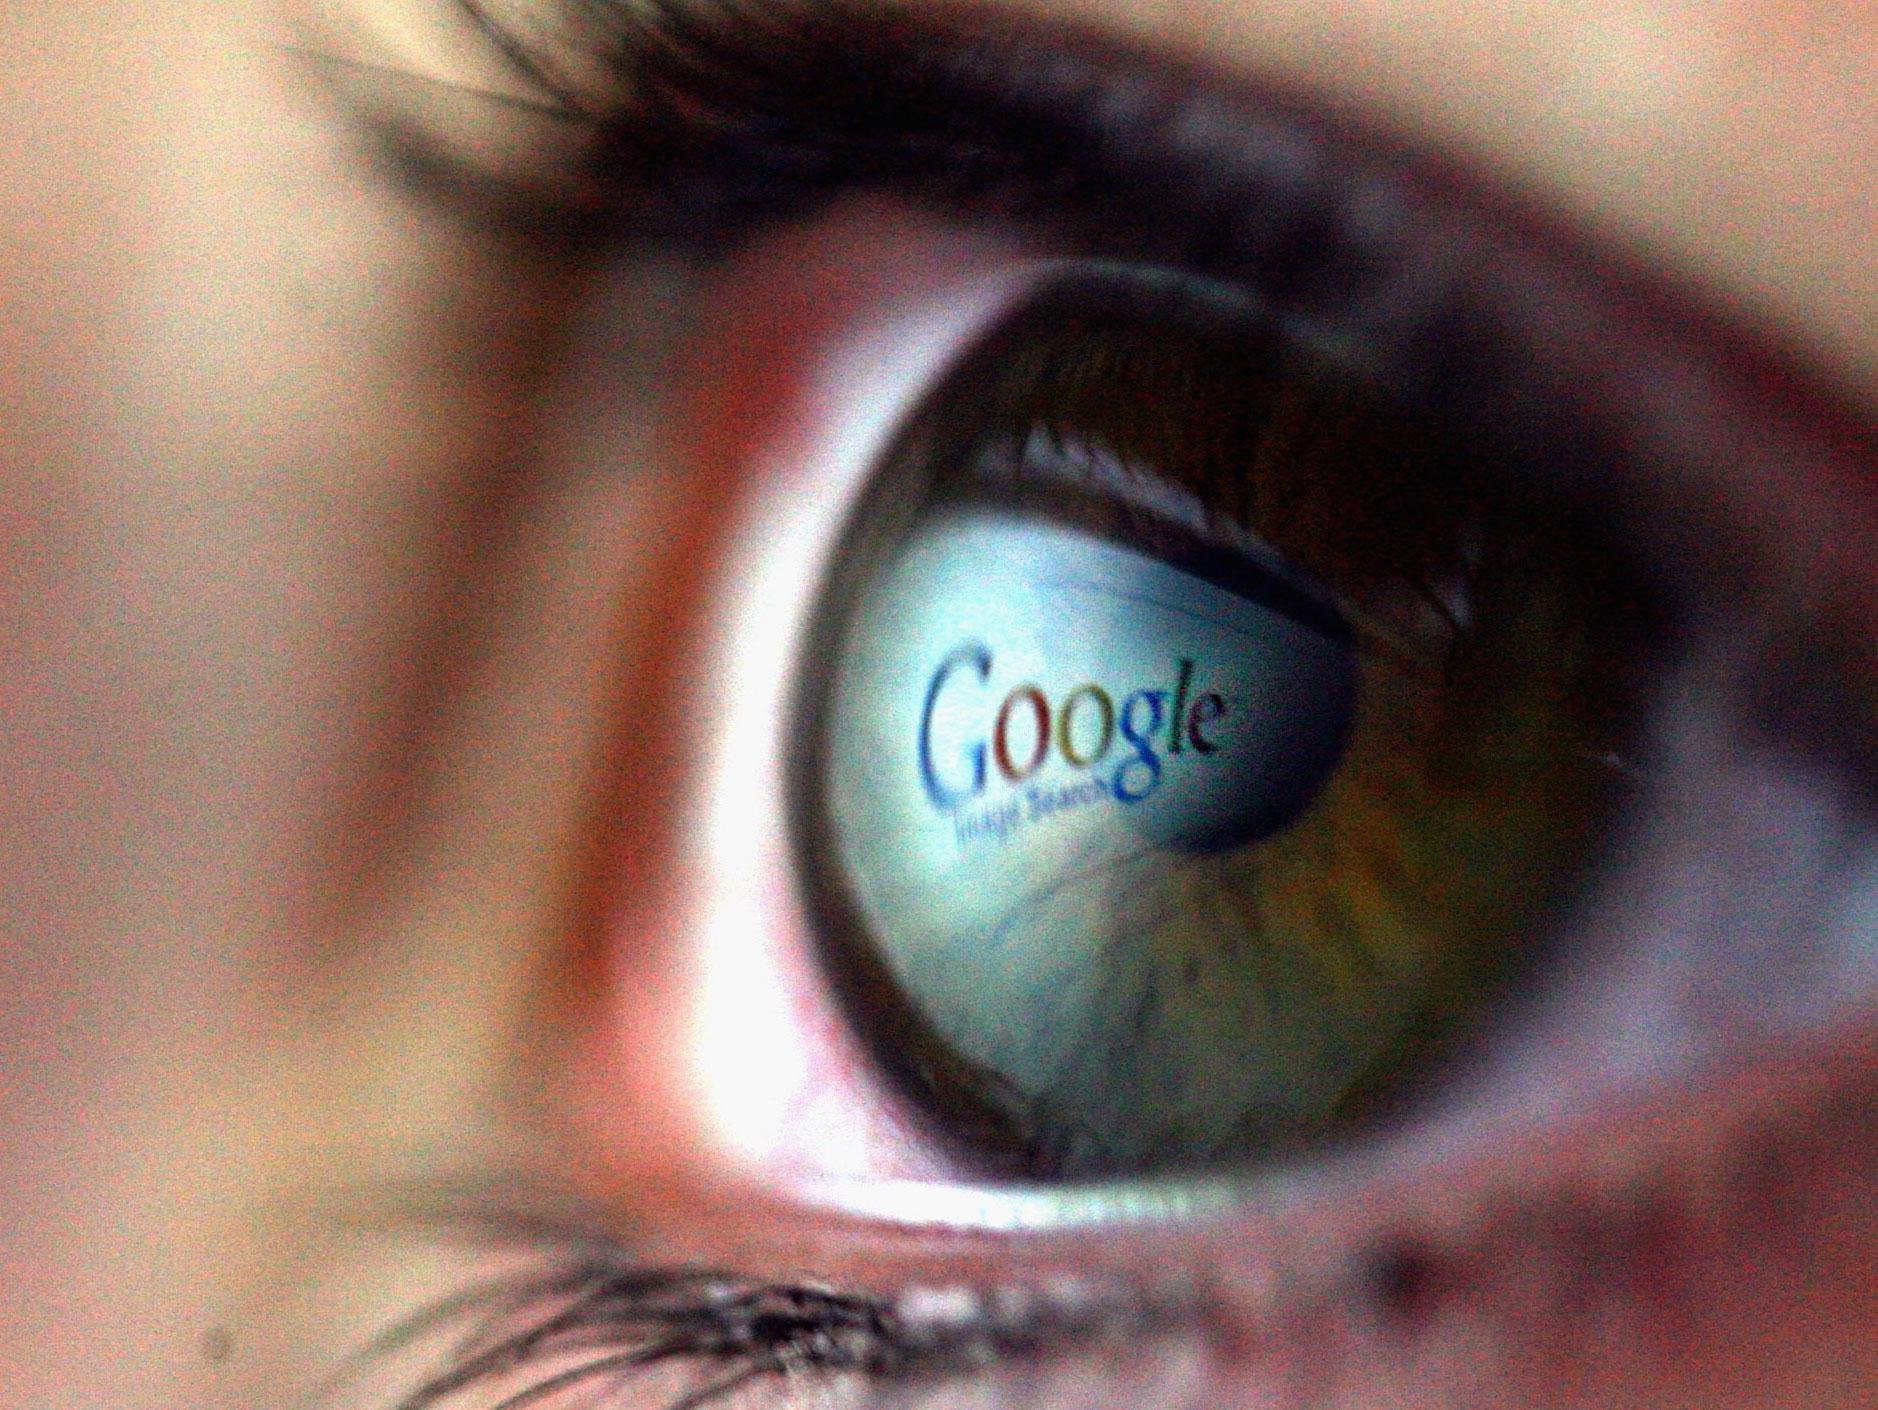 Google My Activity shows everything that company knows about its users – and there's a lot